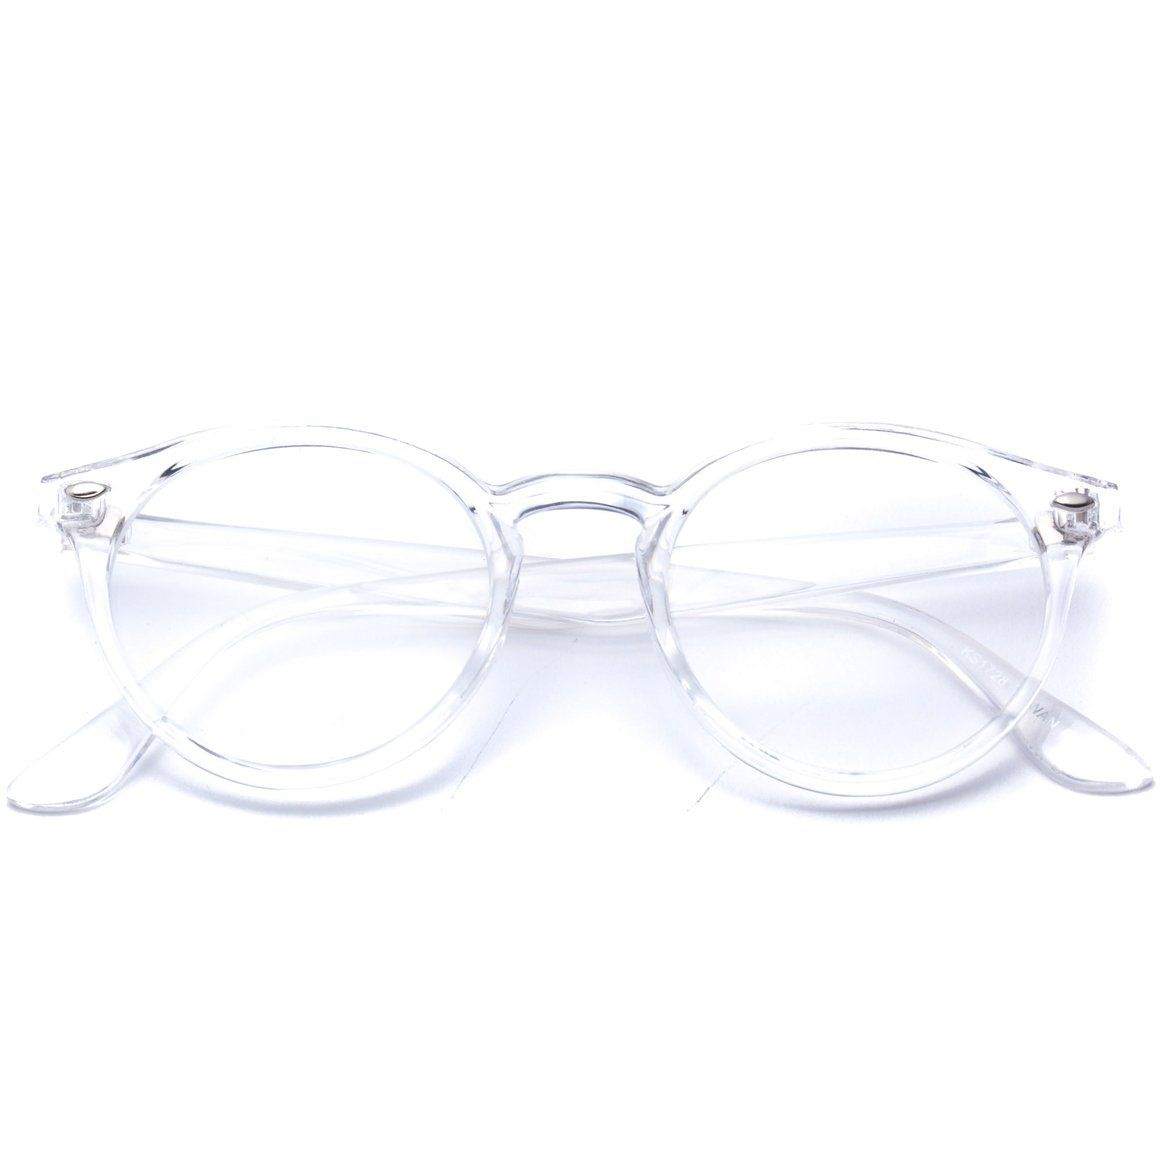 c49bea2b08 Ainsley Transparent Round Clear Frame Glasses - Clear Optical ...